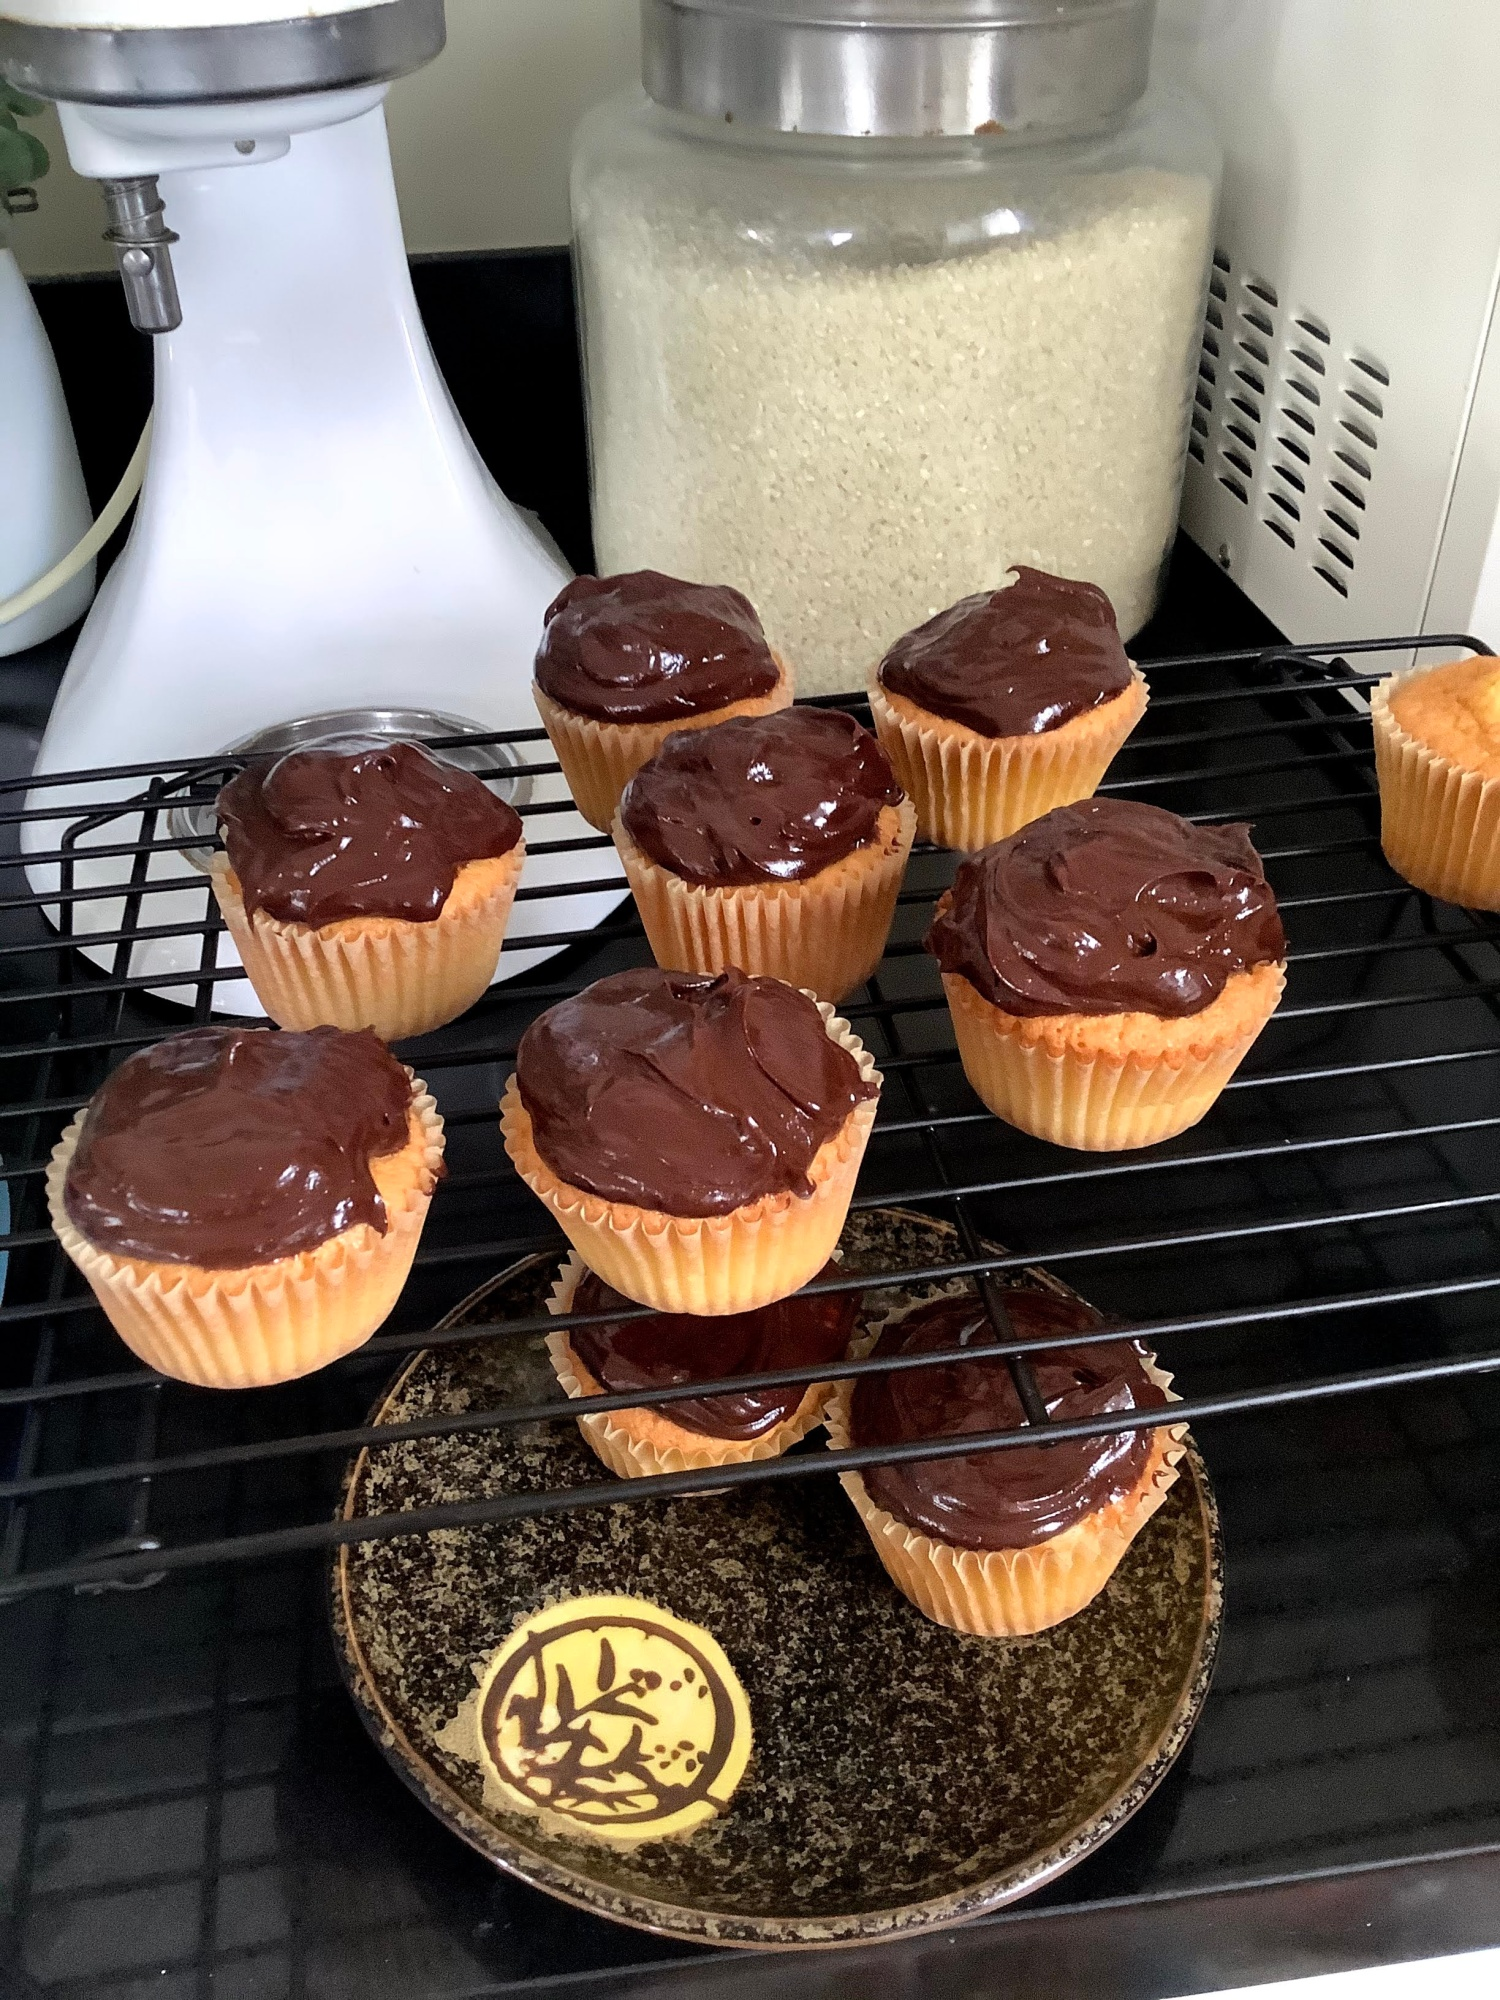 Yellow cupcakes topped with chocolate ganache, on a rack